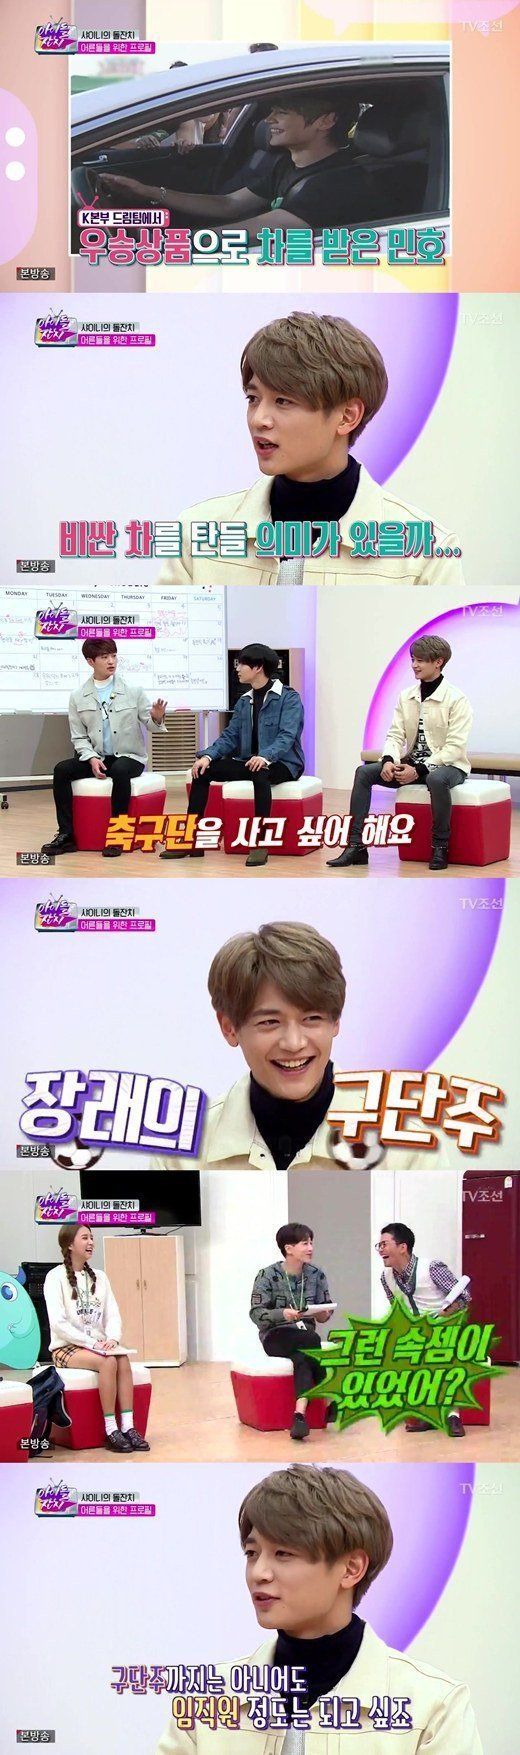 SHINee's Onew reveals why Minho is thrifty | allkpop.com